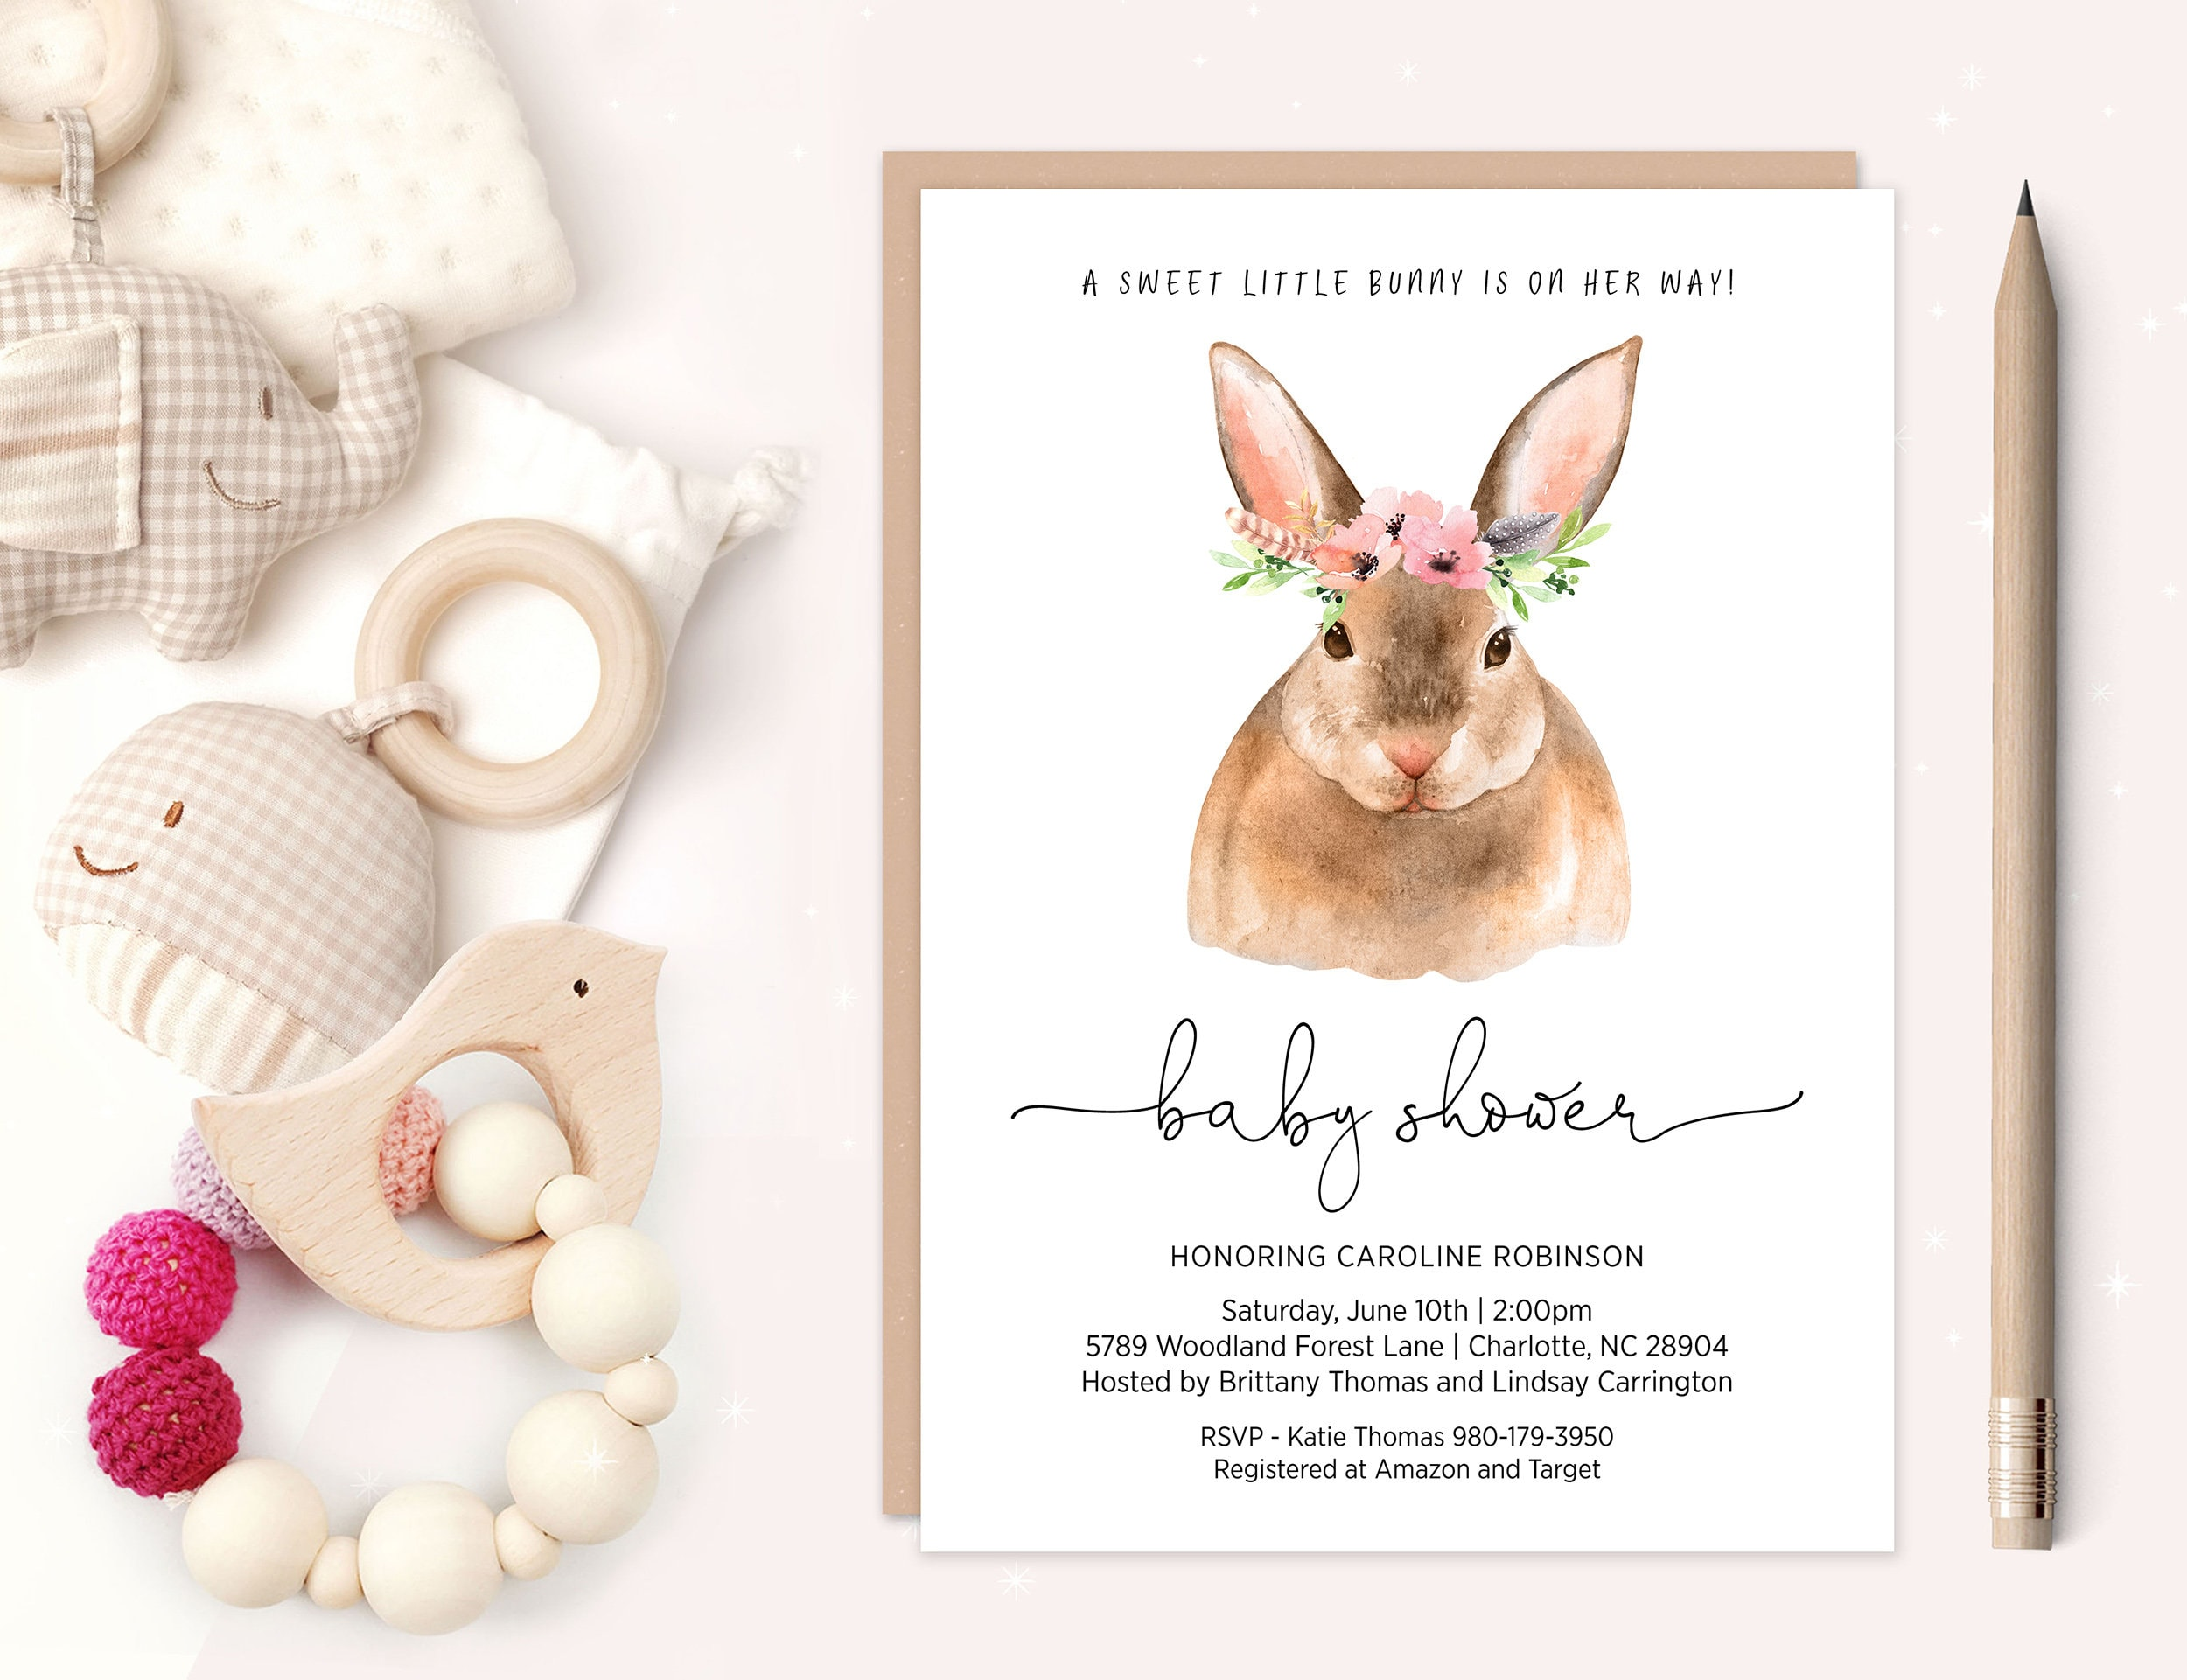 invitation watercolour pinterest twenty collections bunny one invitations best party pink image birthday on shower baby pretty in images summer